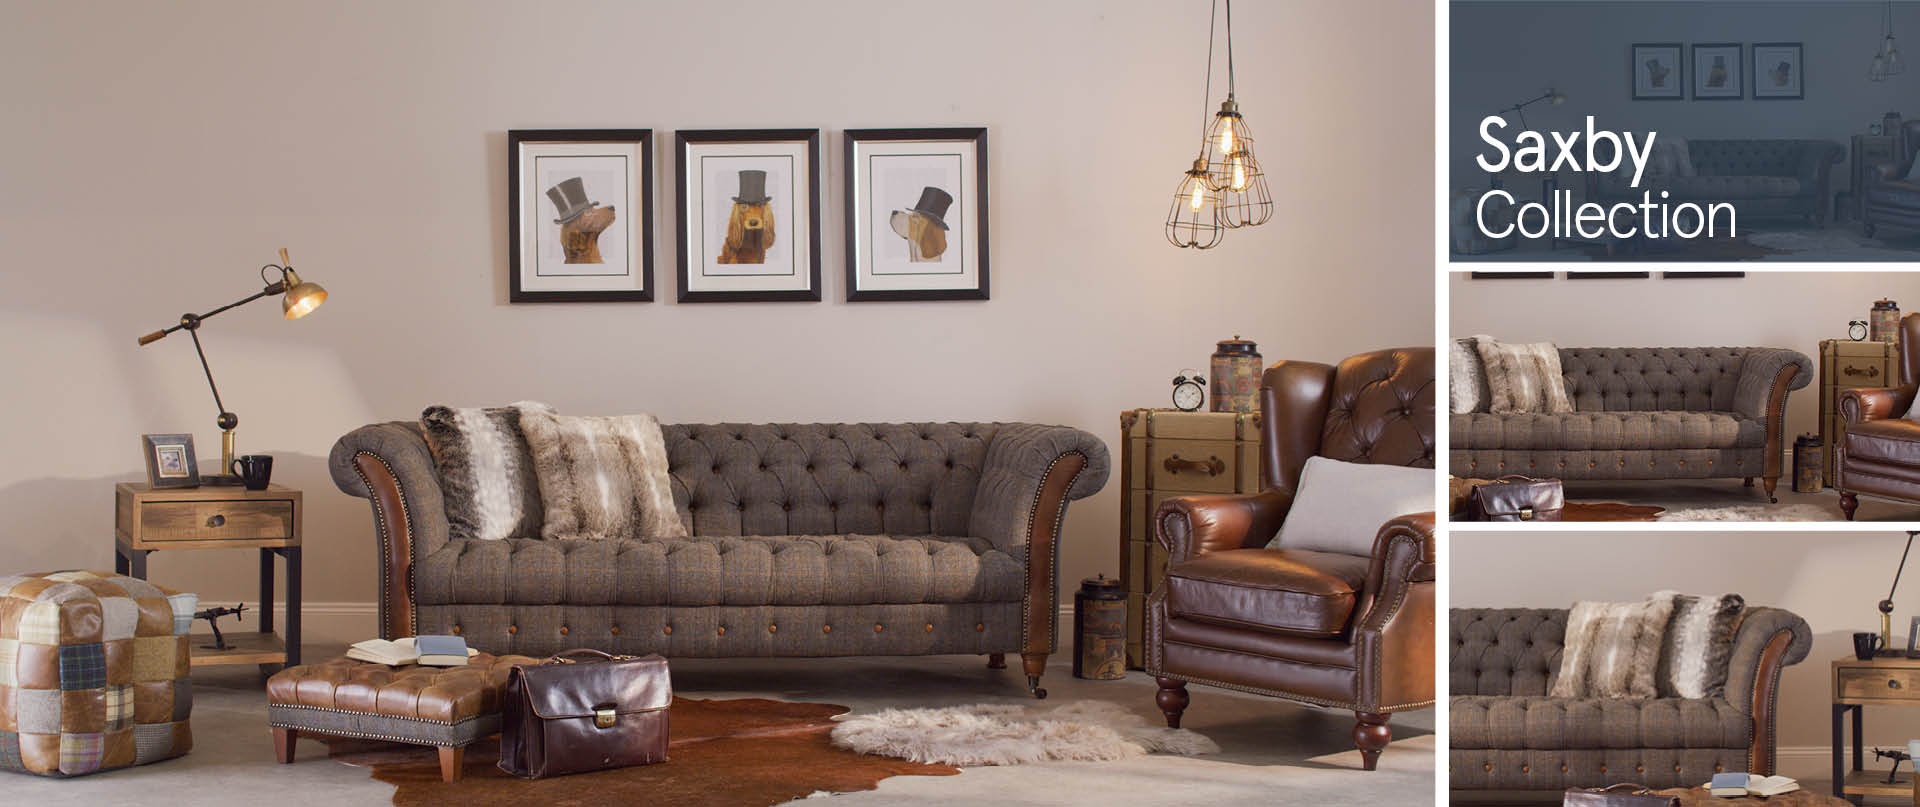 Saxby All-Leather-and-Fabric-Mix-Sofas-Ranges